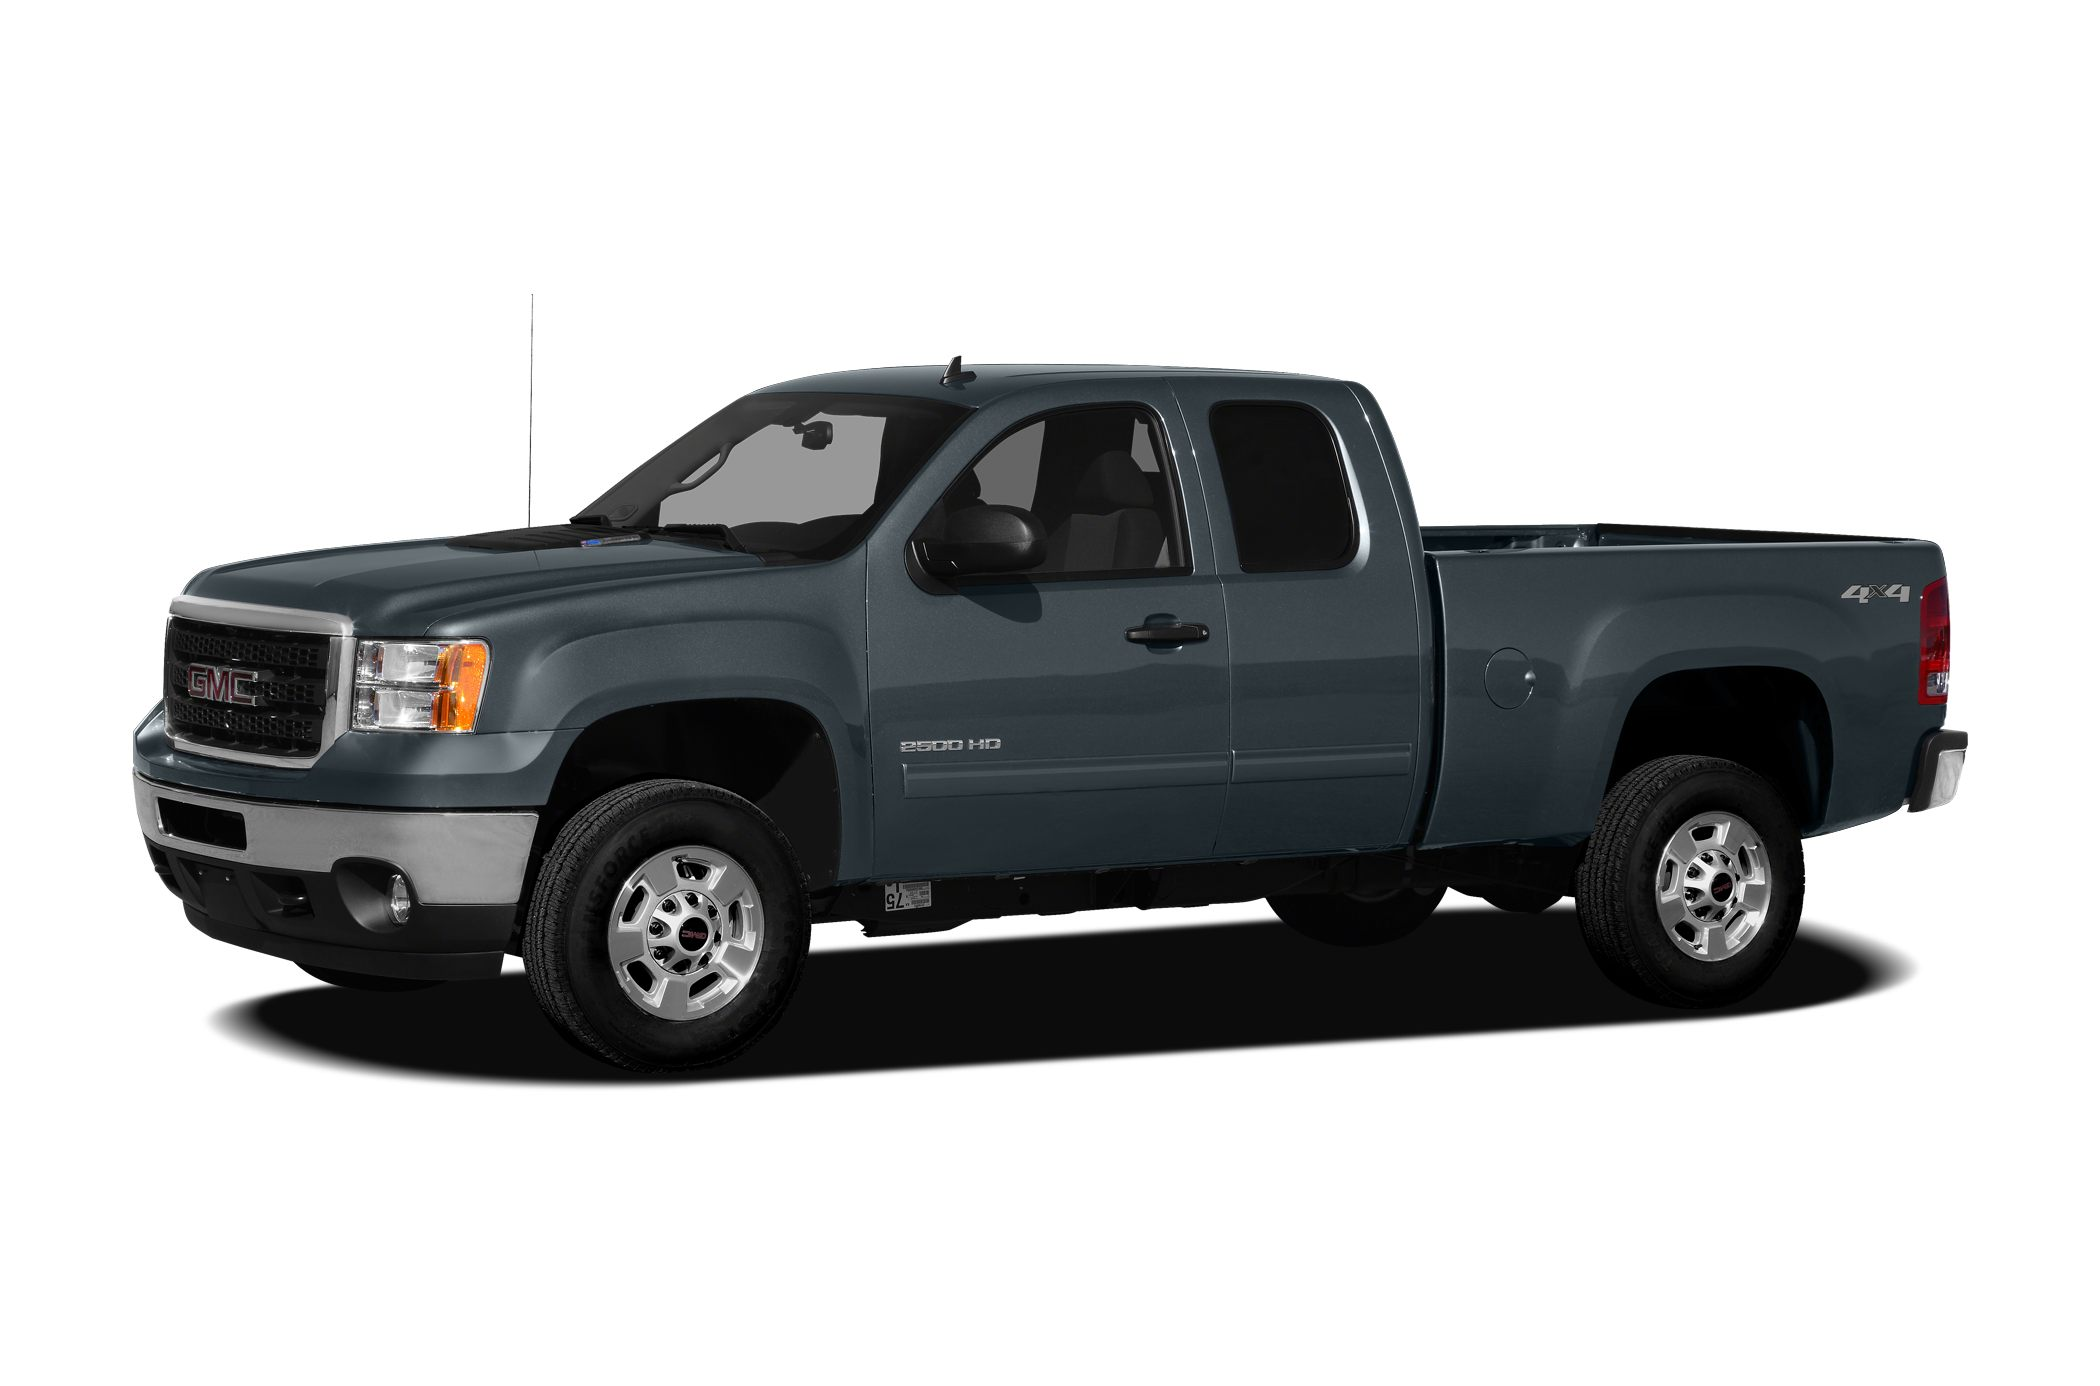 2011 GMC Sierra 2500 SLT Extended Cab Pickup for sale in Mankato for $32,980 with 106,745 miles.